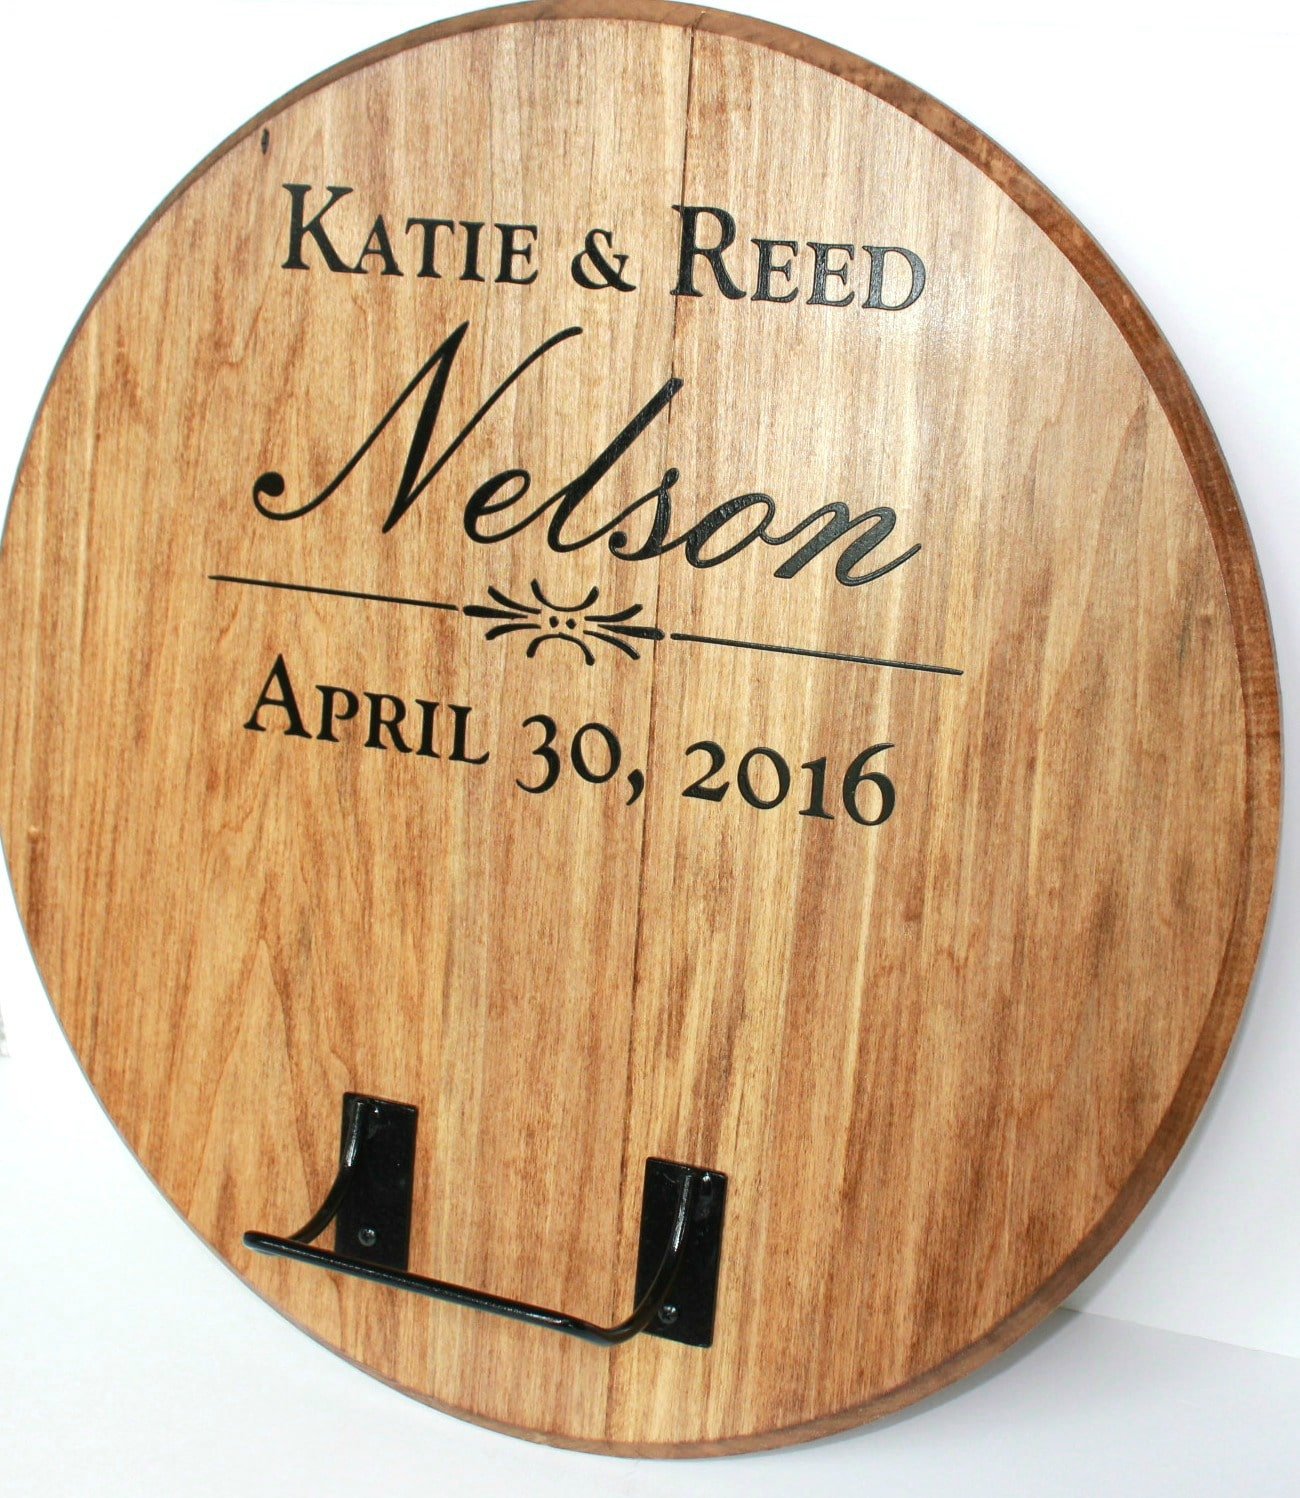 Your guests can sign the barrel head creating a long lasting memento for your home